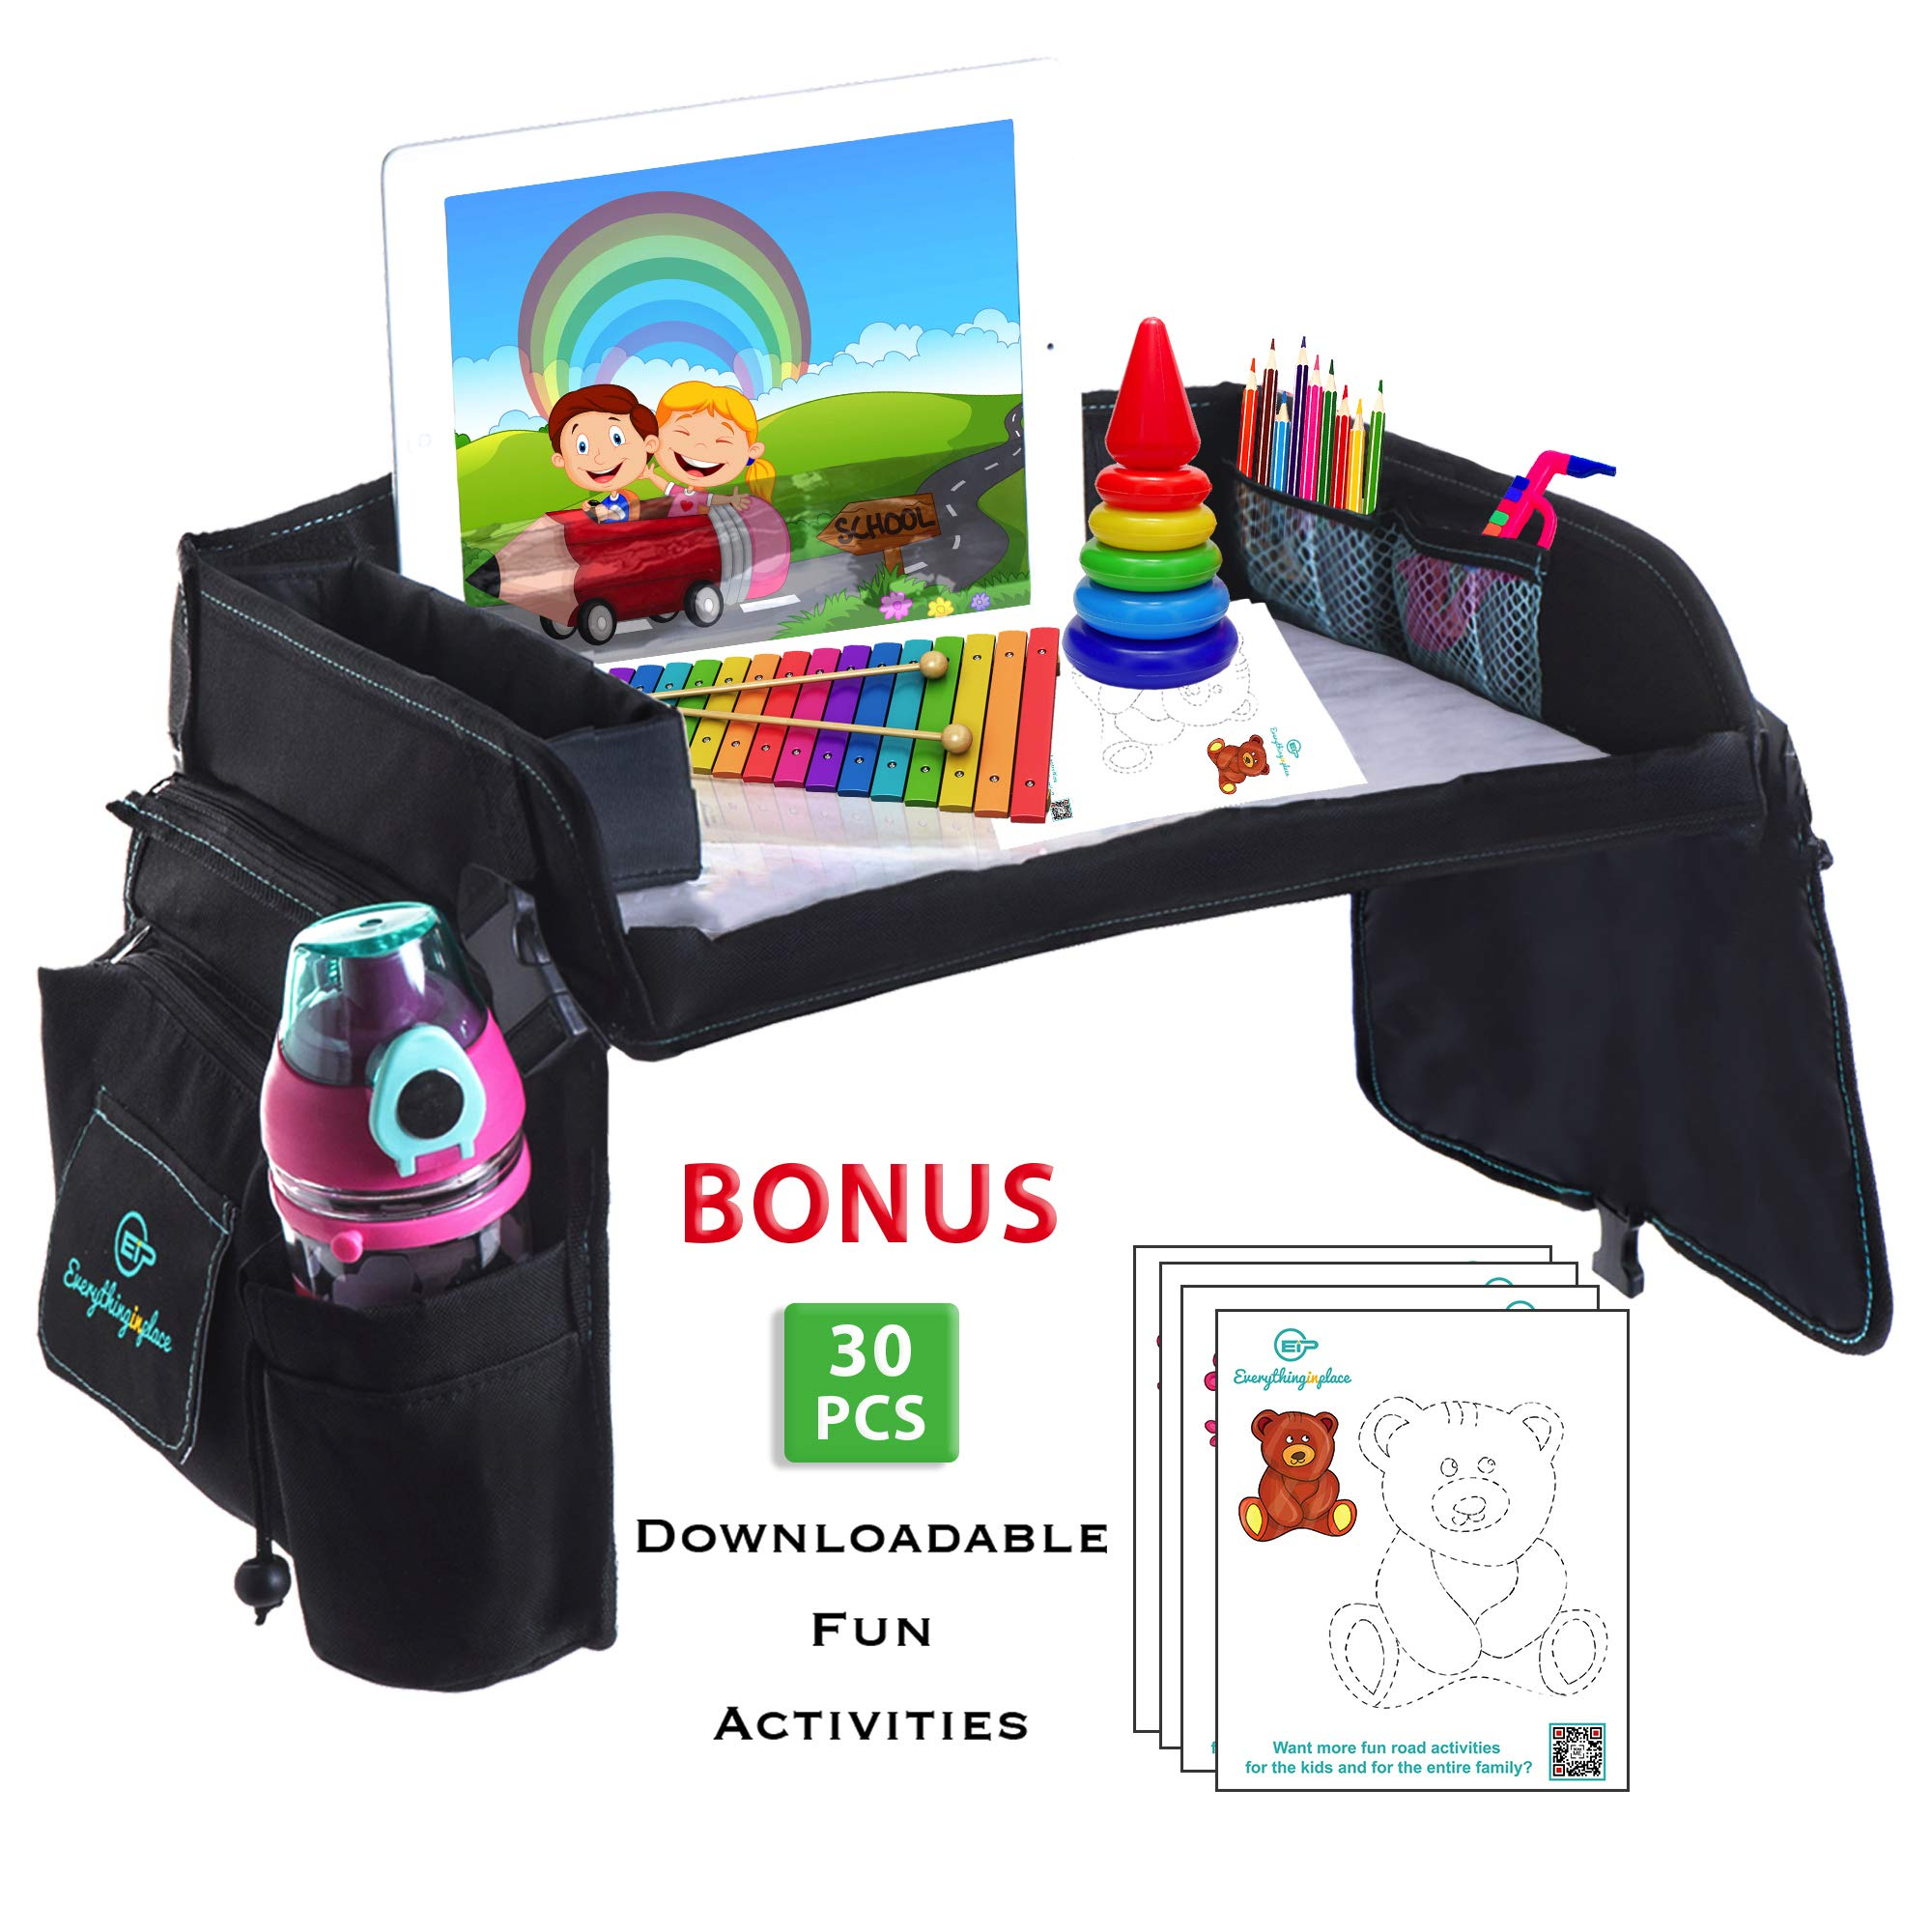 Kids Travel Play Tray for Car Seat with Dry Erase Top, Bonus 30 Downloadable Educational Drawing by EverythingINplace